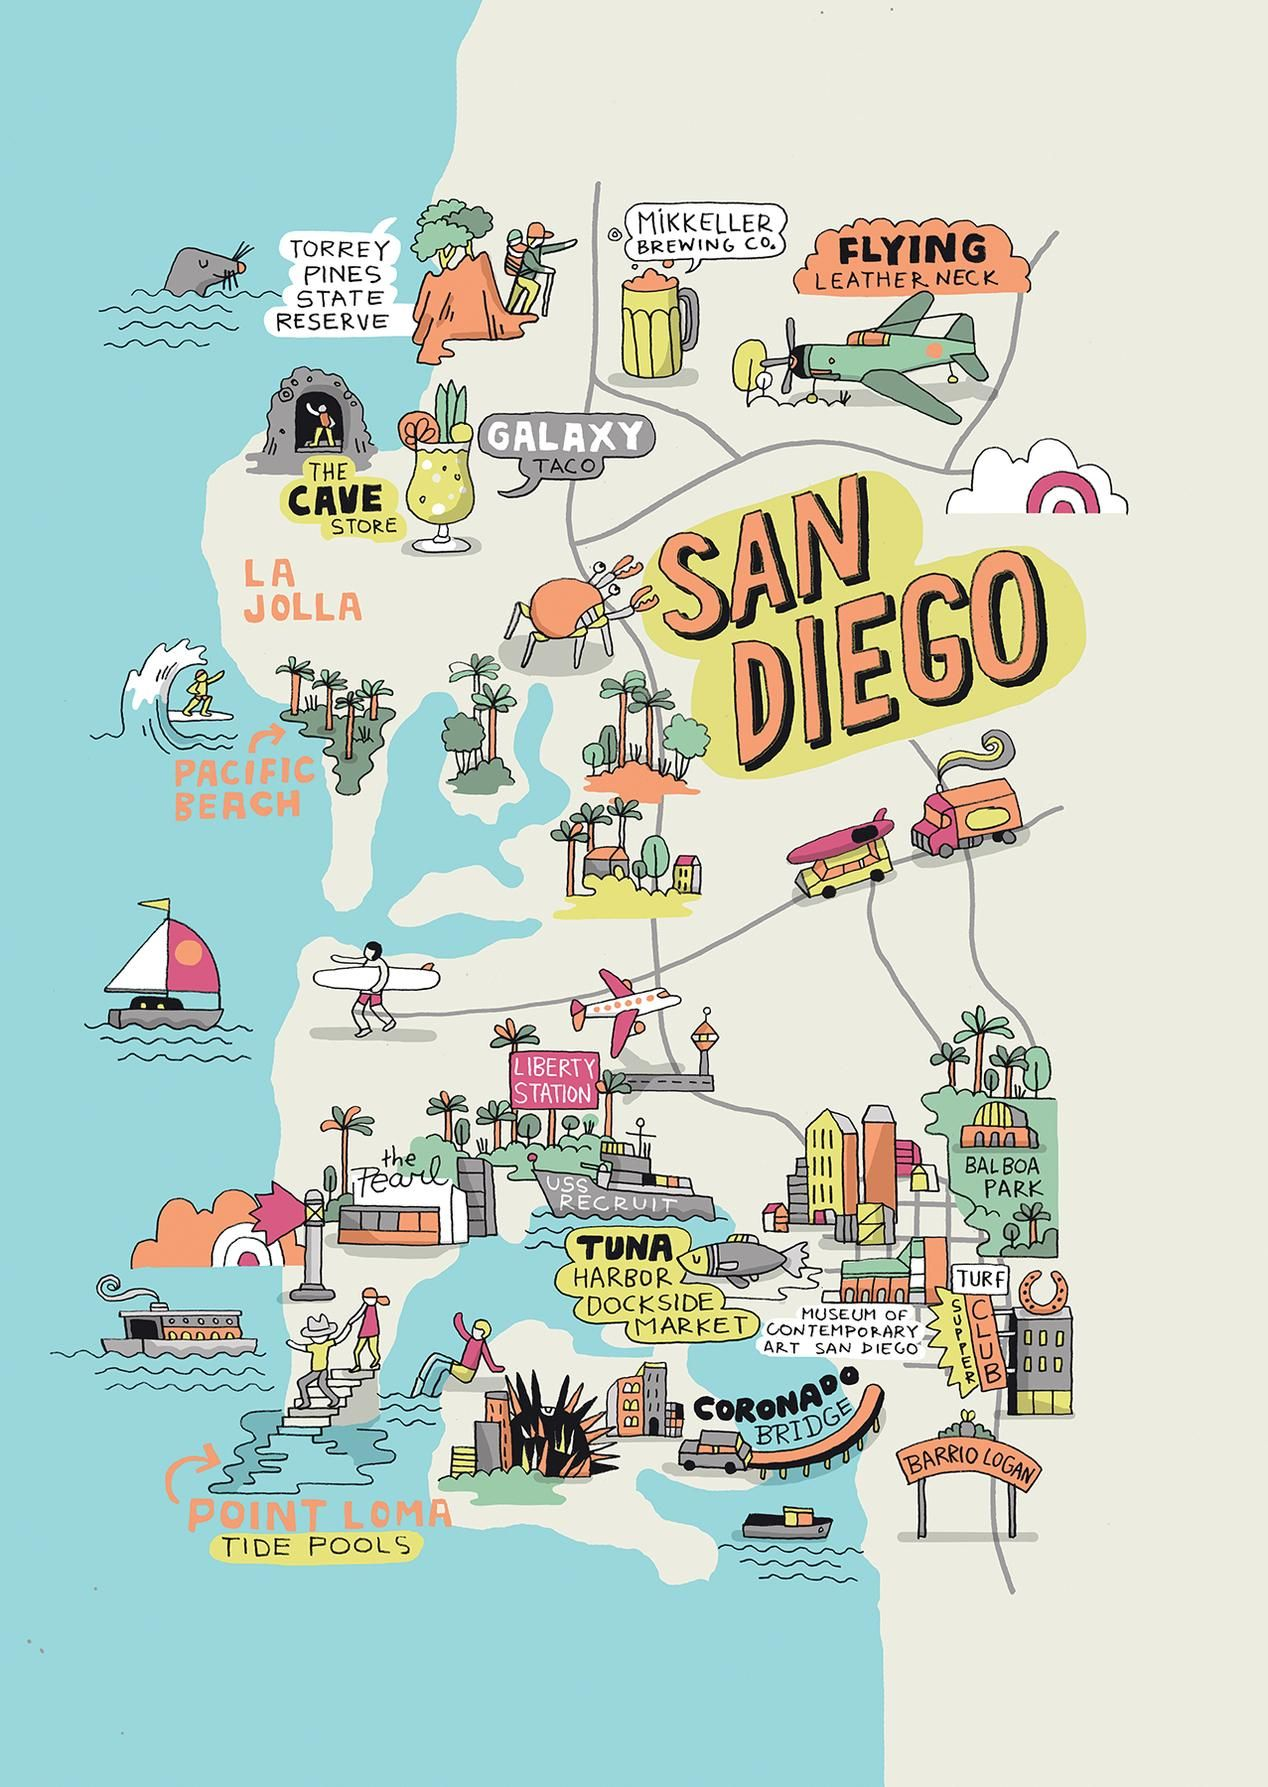 , A Long Weekend in San Diego: The Grown-Ups Guide, My Travels Blog 2020, My Travels Blog 2020